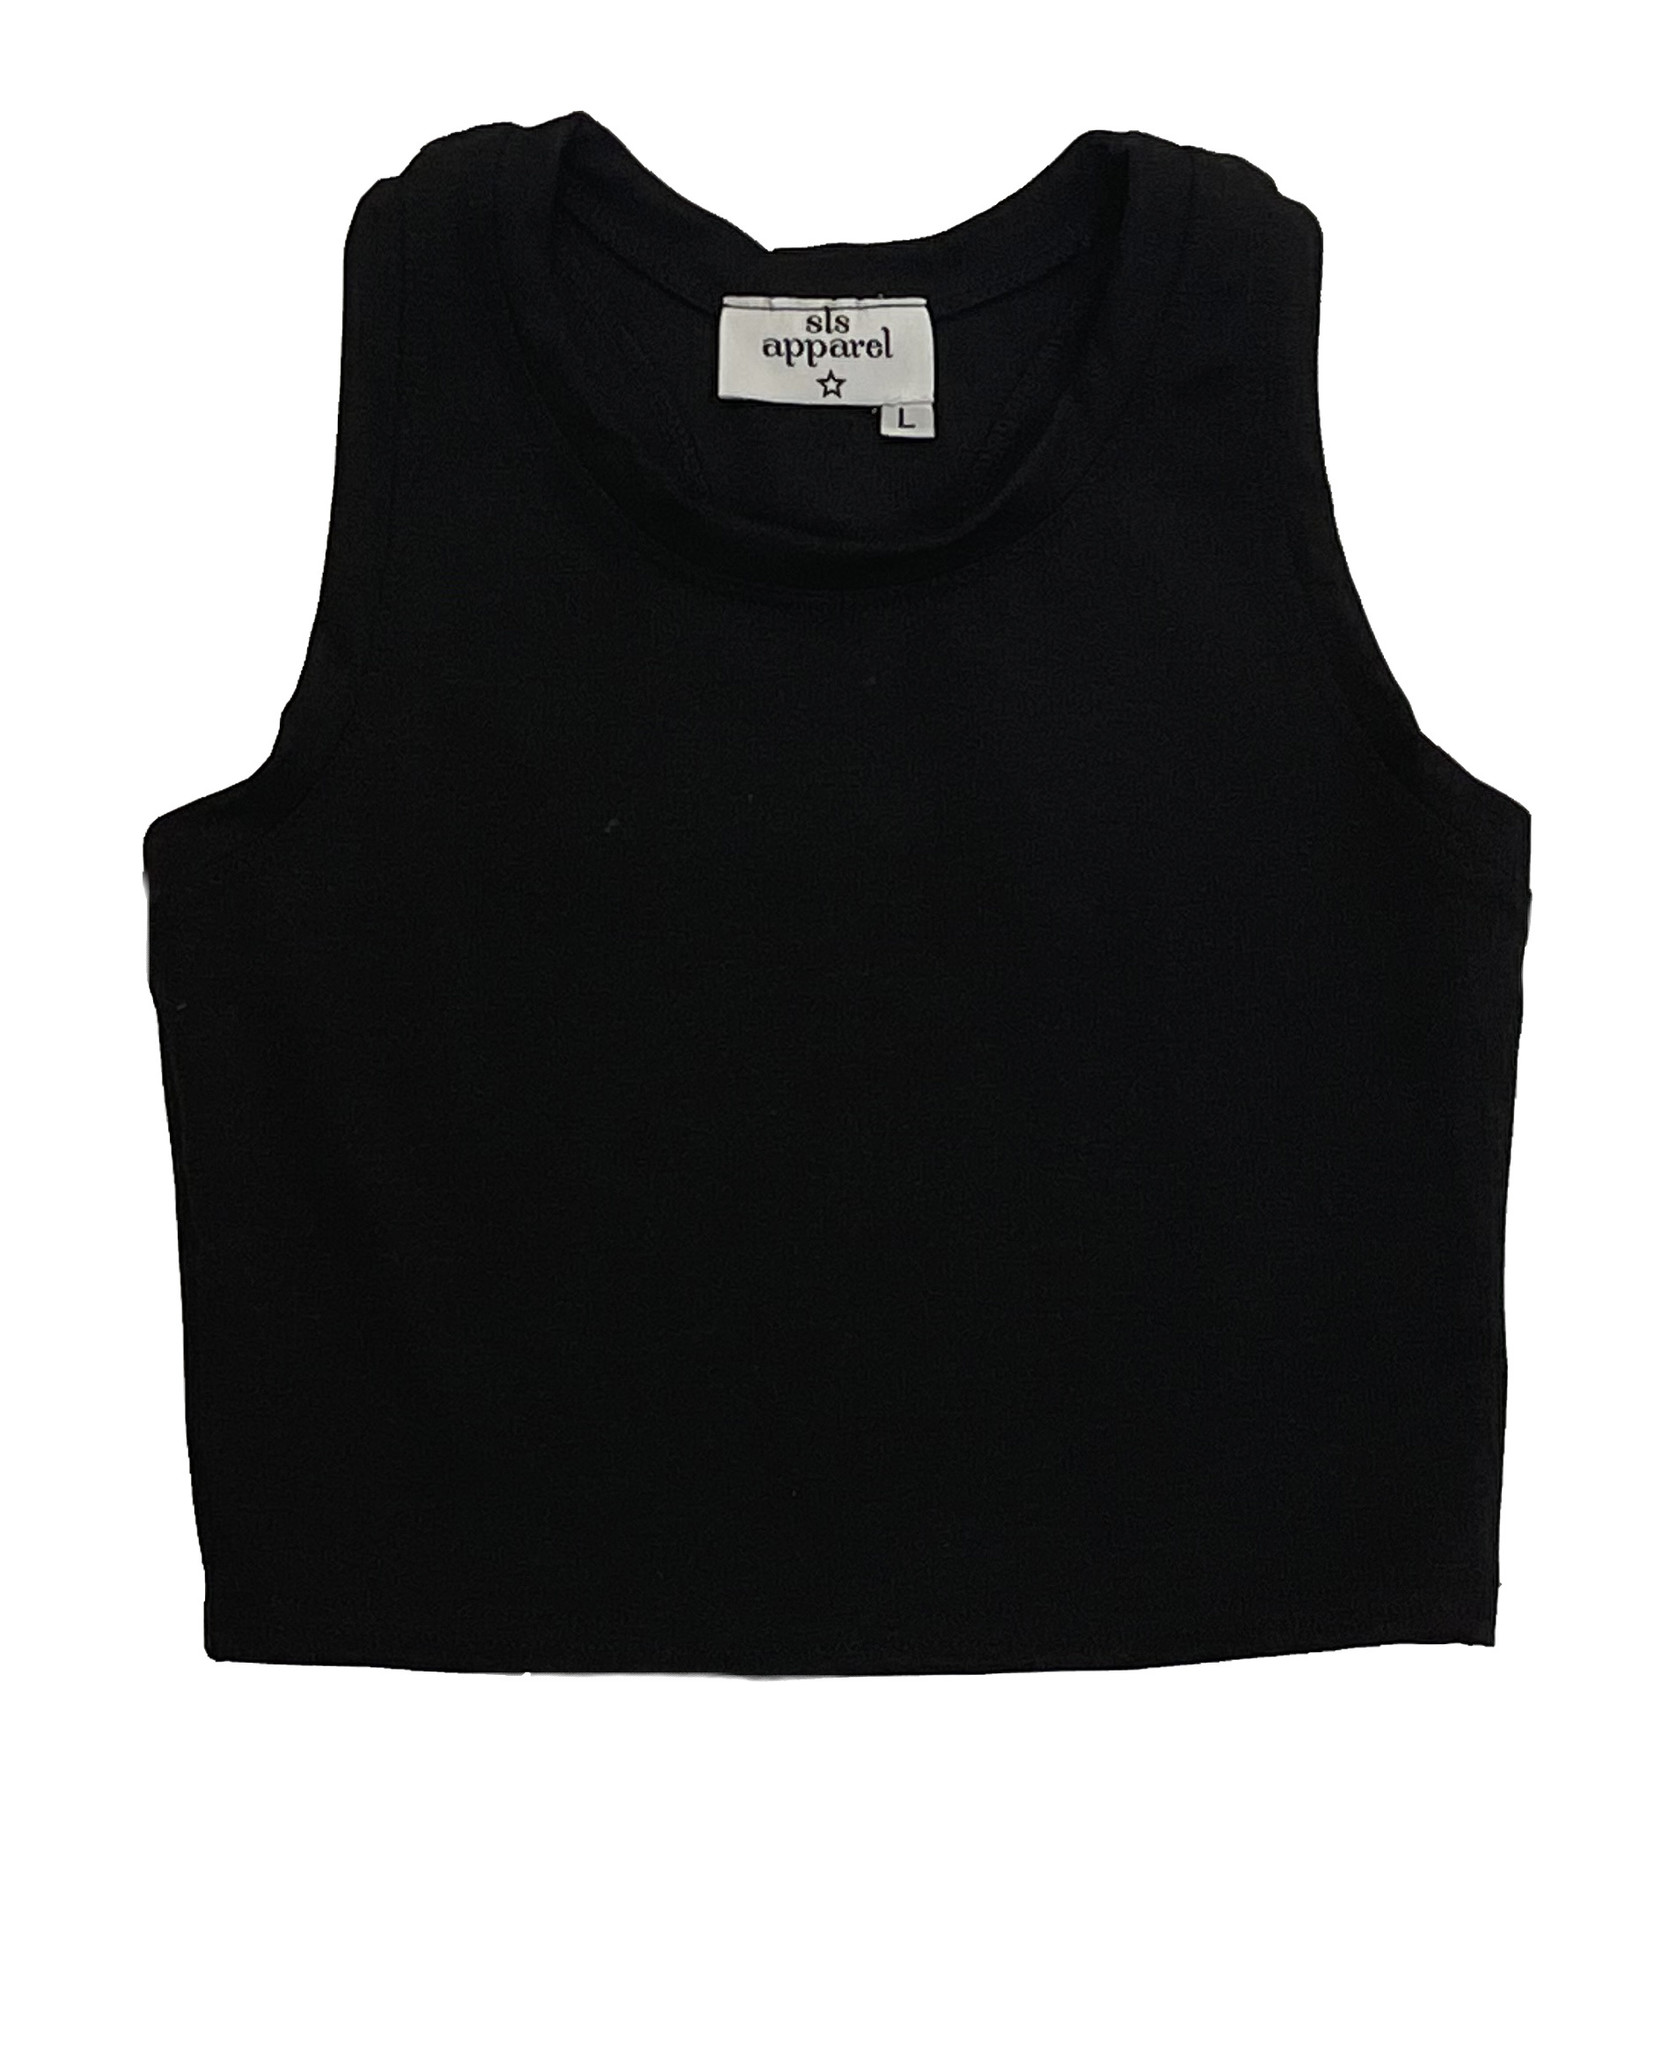 SLS Black Cropped Tank Top